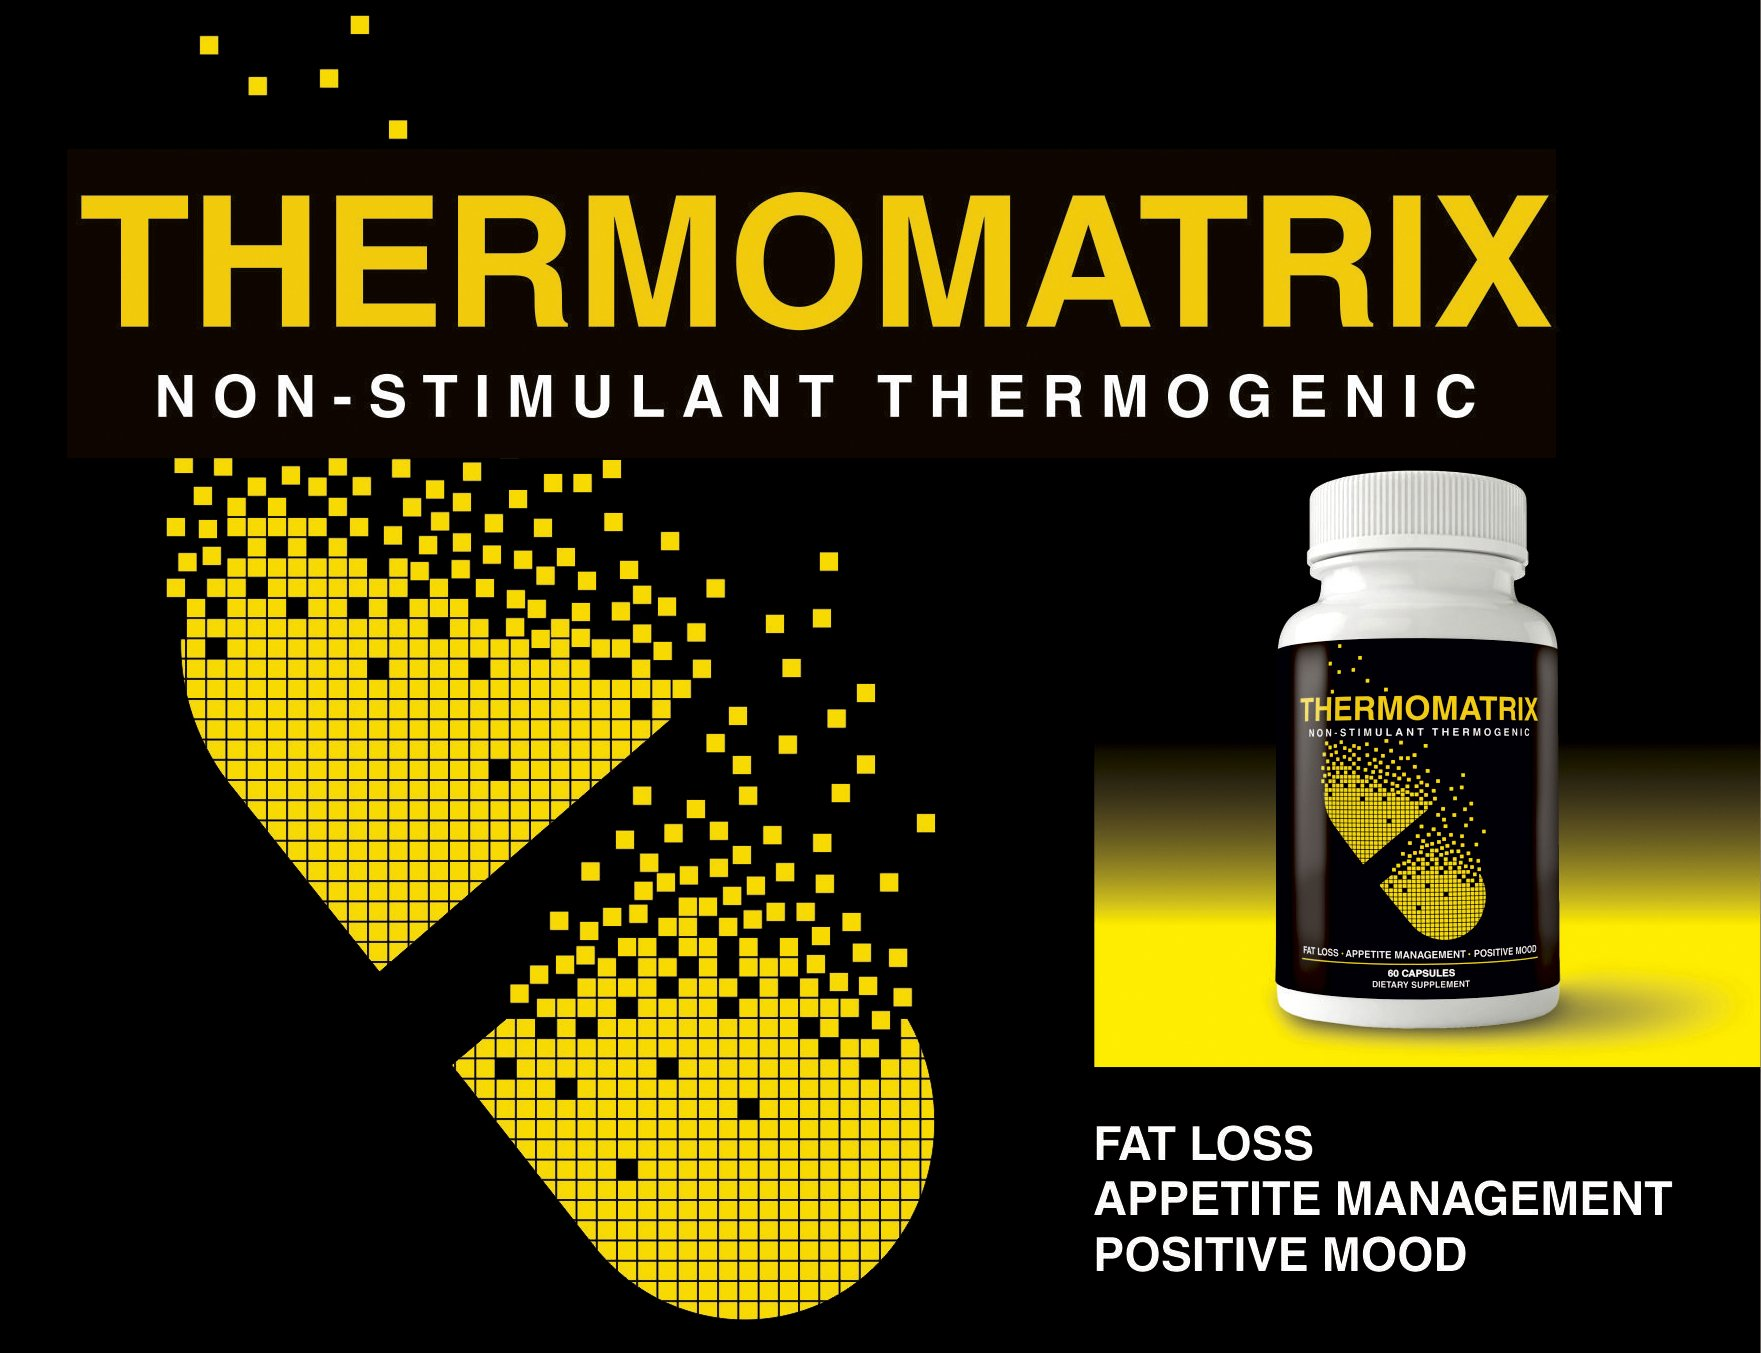 ThermoMatrix Weight Loss Pills - Diet Pills for Men and Women - Appetite Suppressant - SUPER FAT BURNER - Get BIG Results!